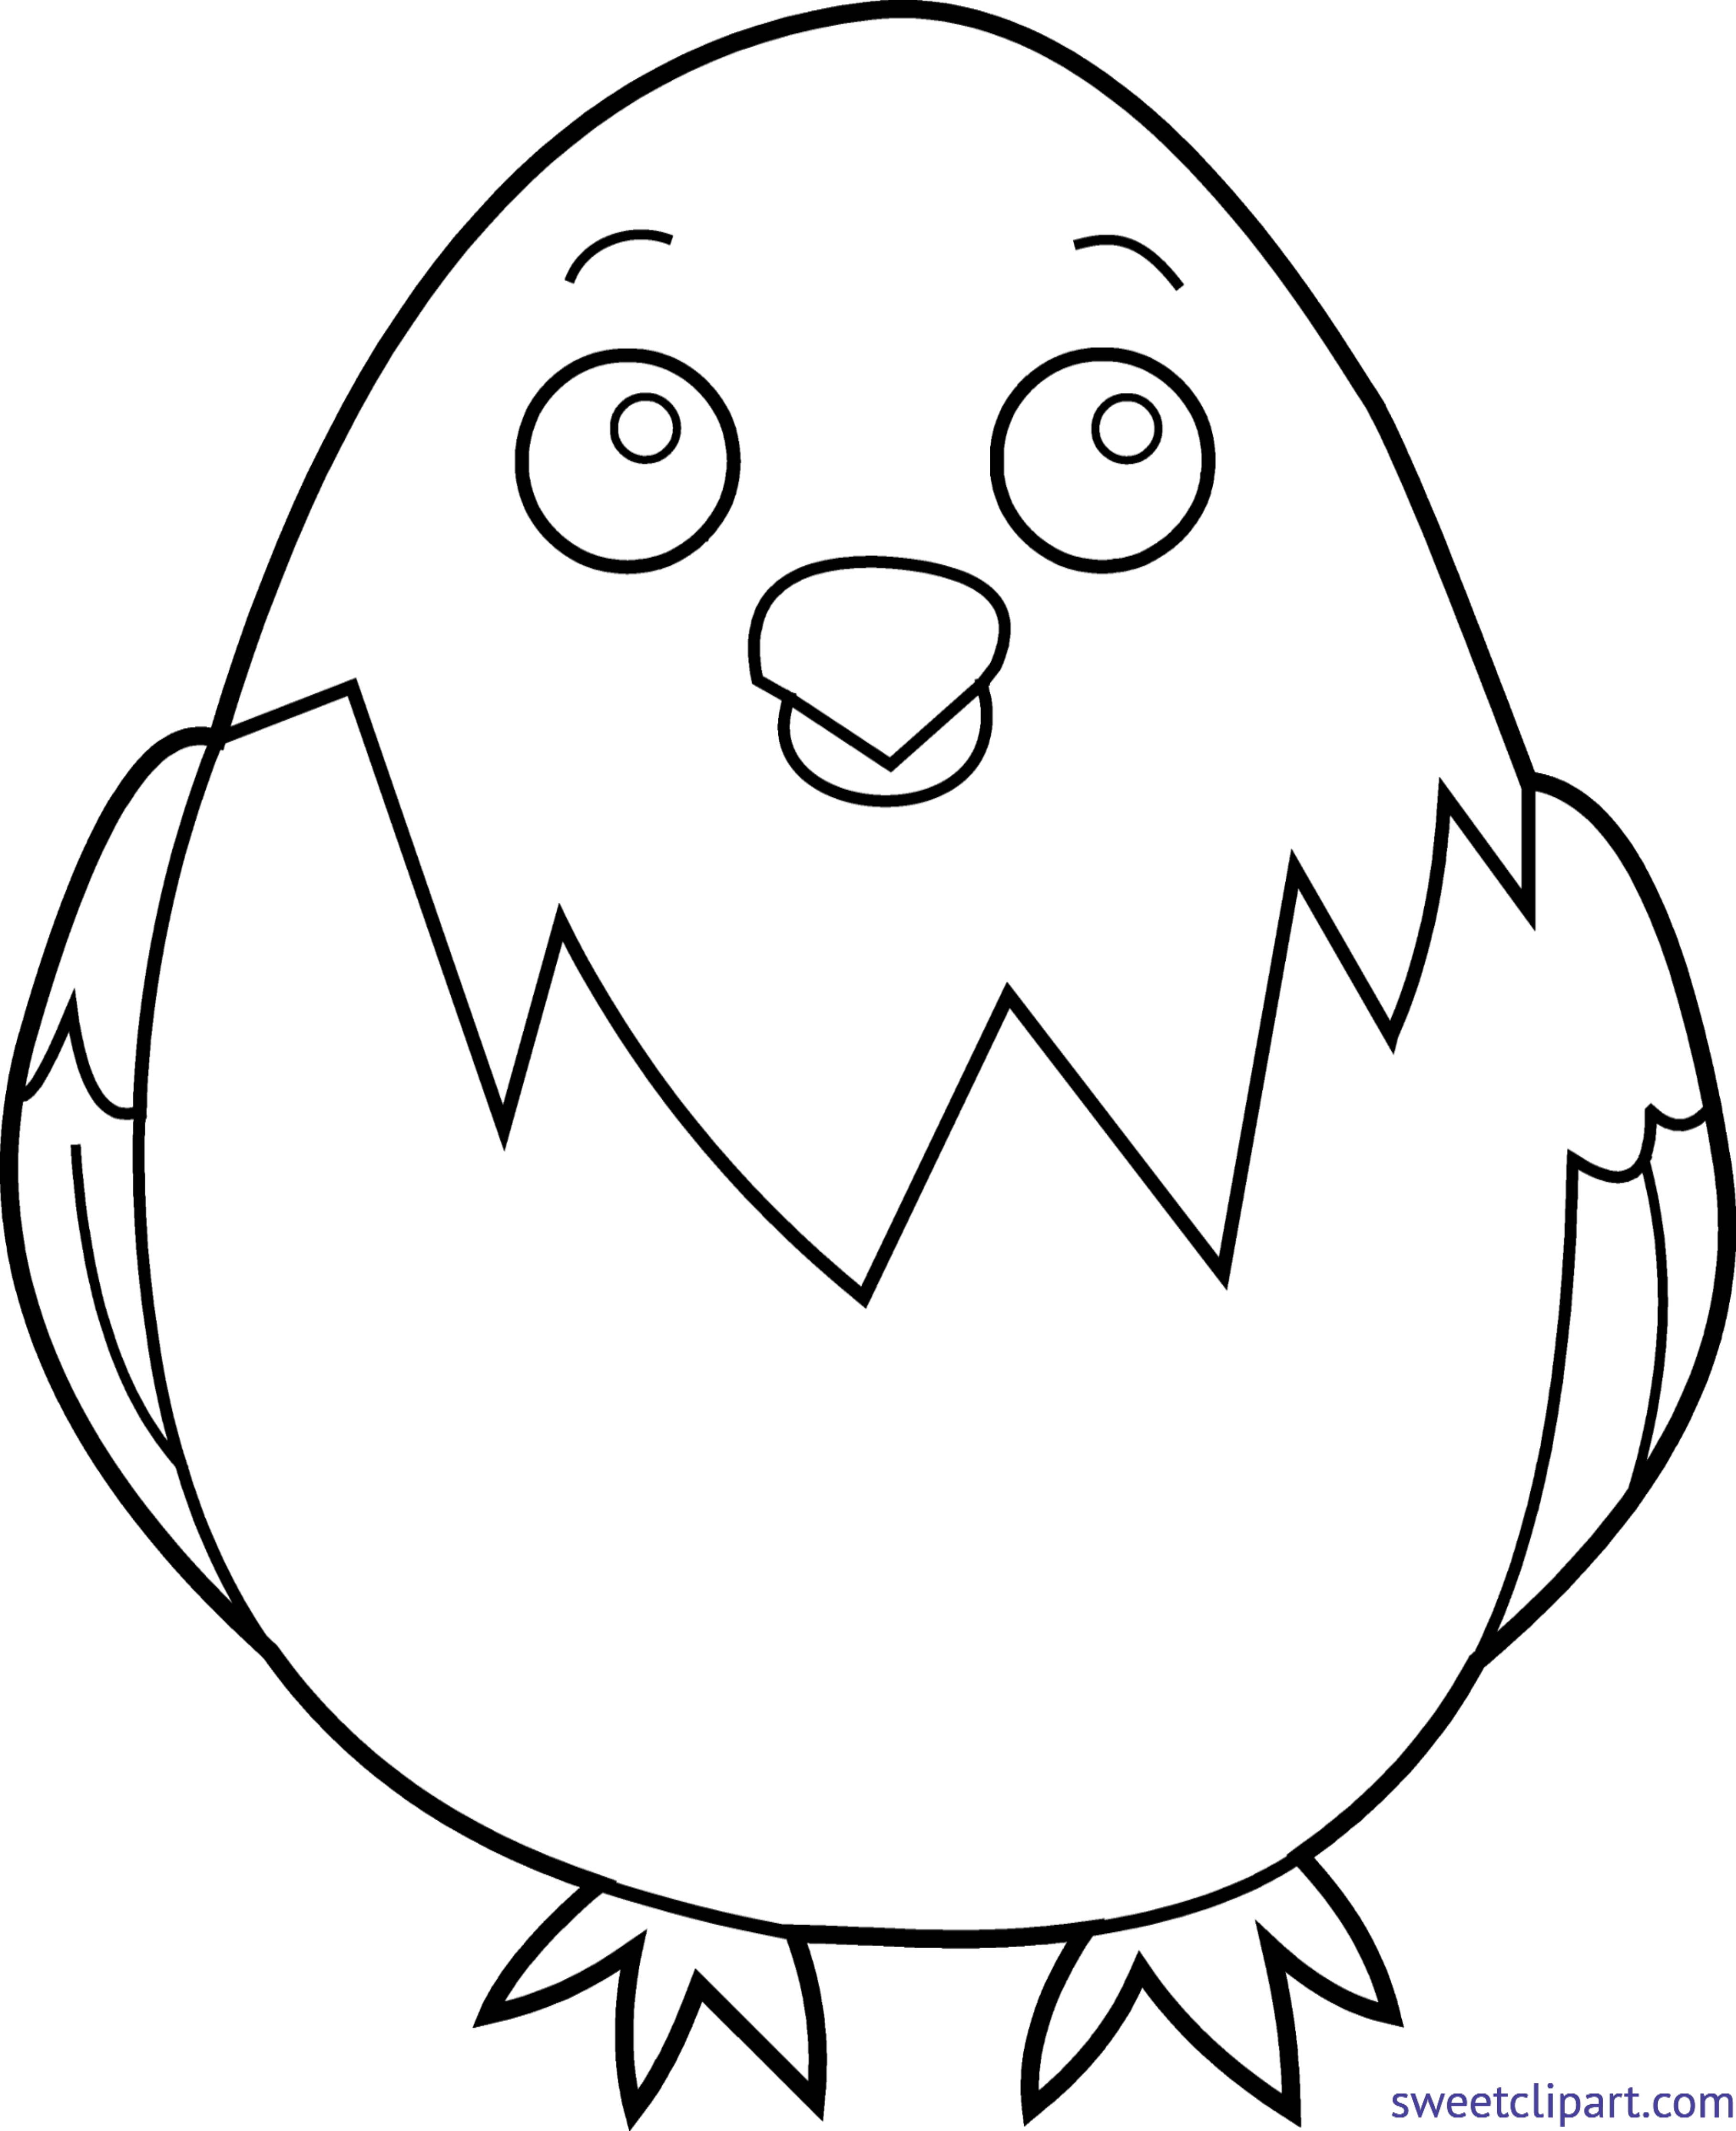 Chick transparent 3 baby. Lineart clip art sweet